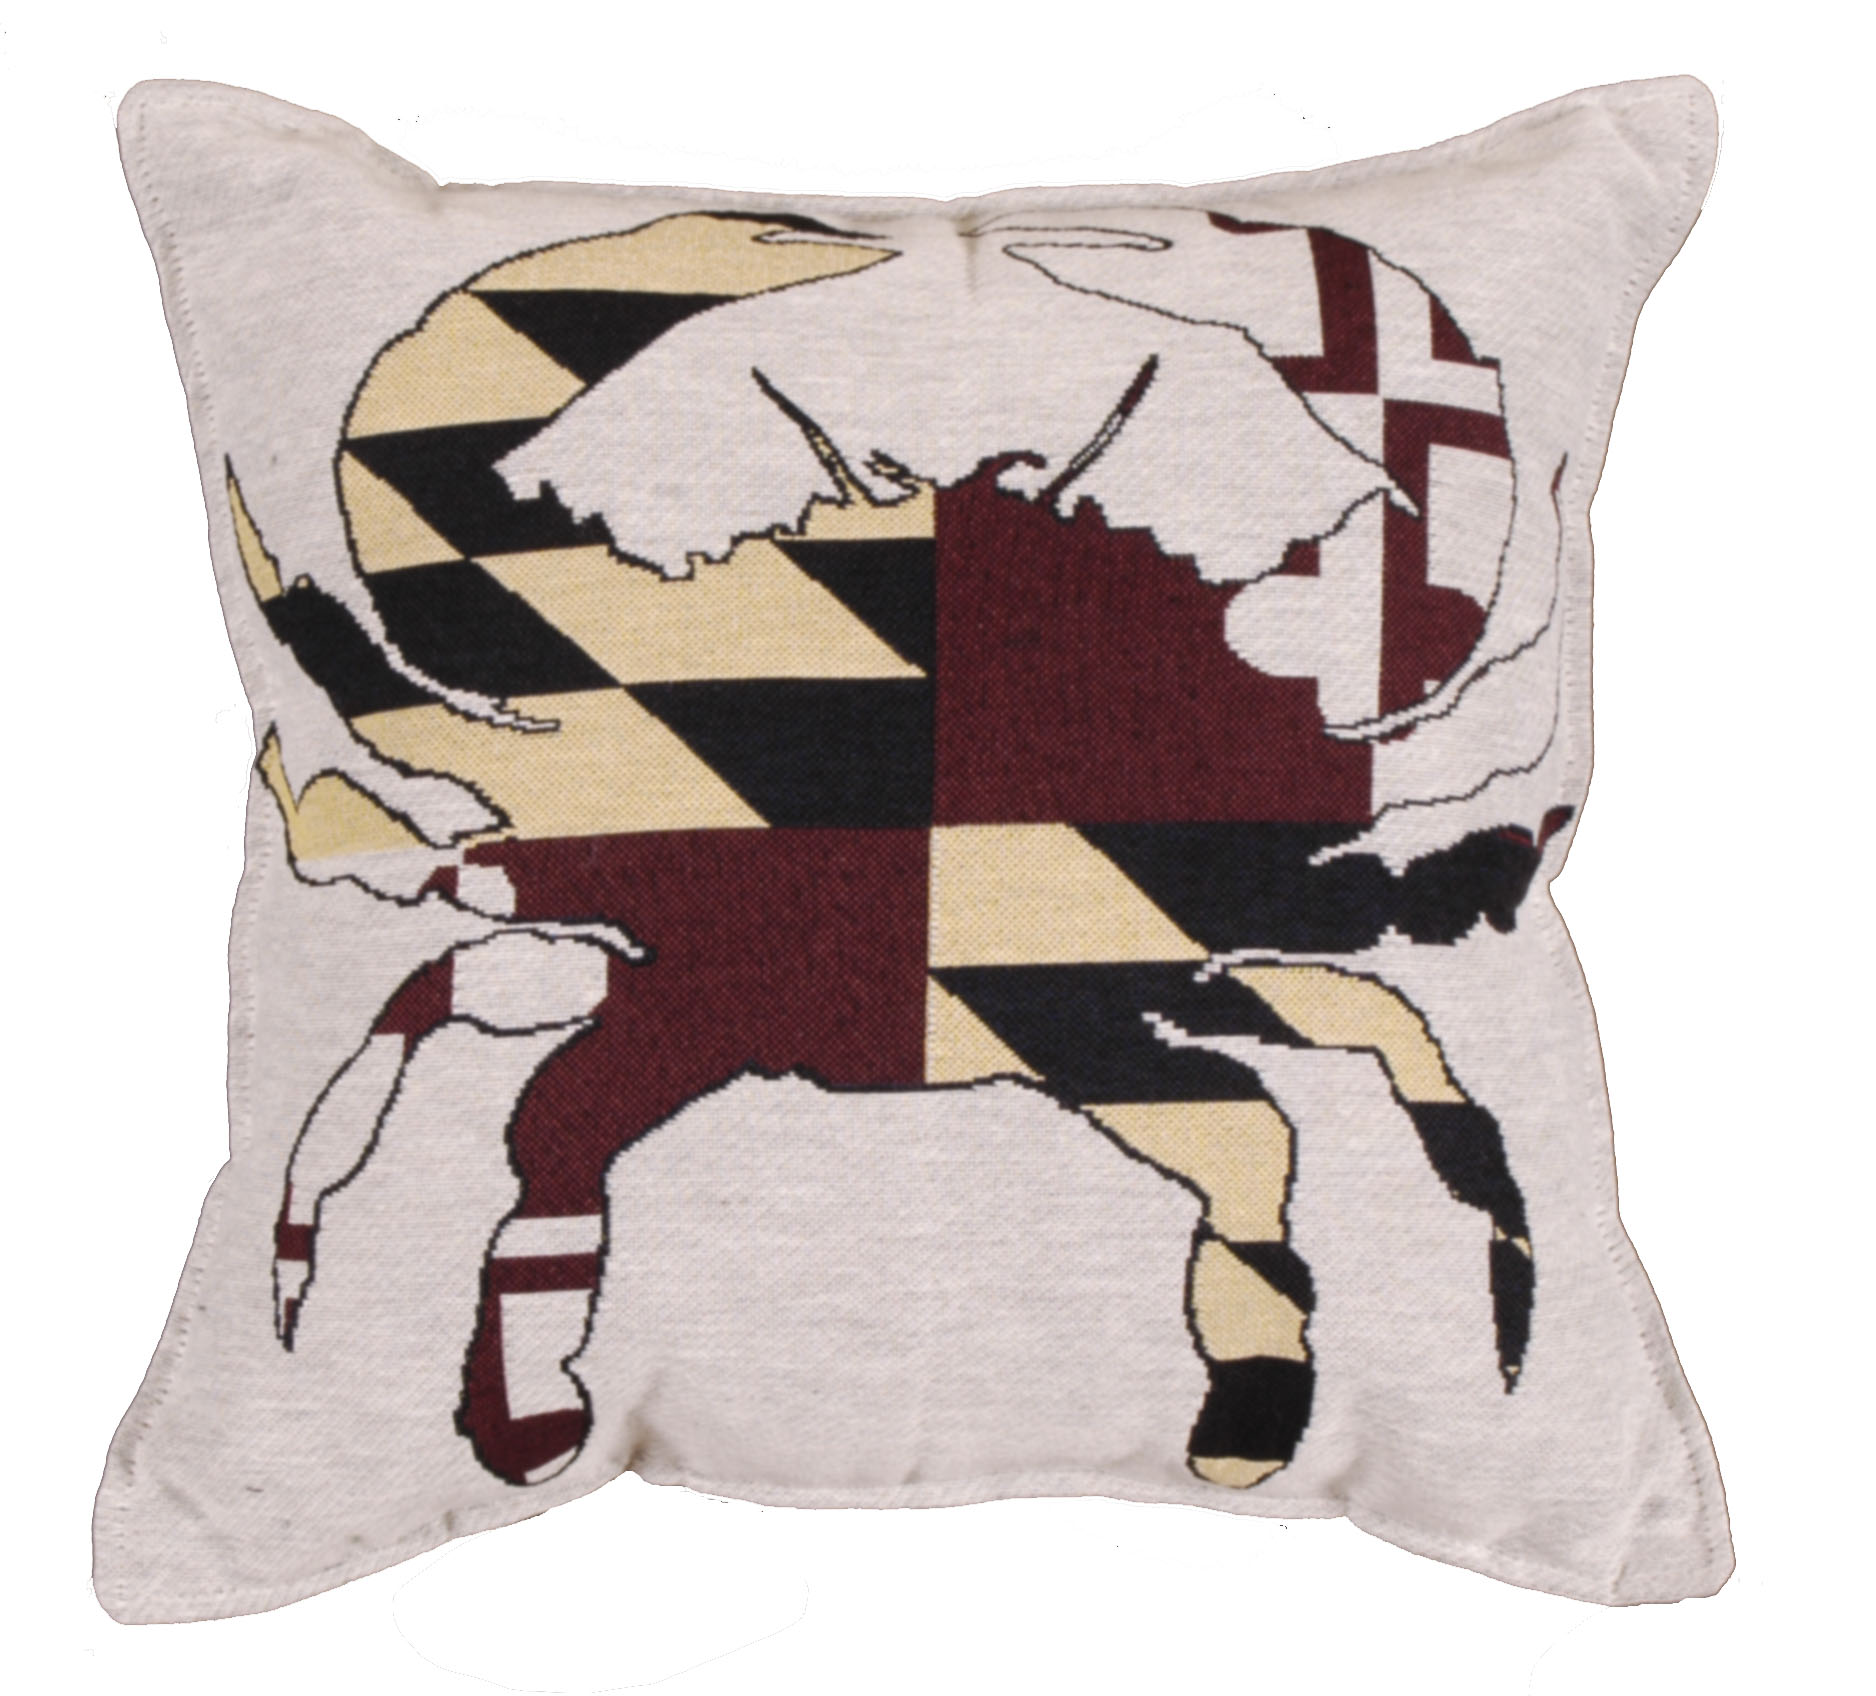 Set of 2 Crab State Flag of Maryland Square Decorative Tapestry Throw Pillows 17""